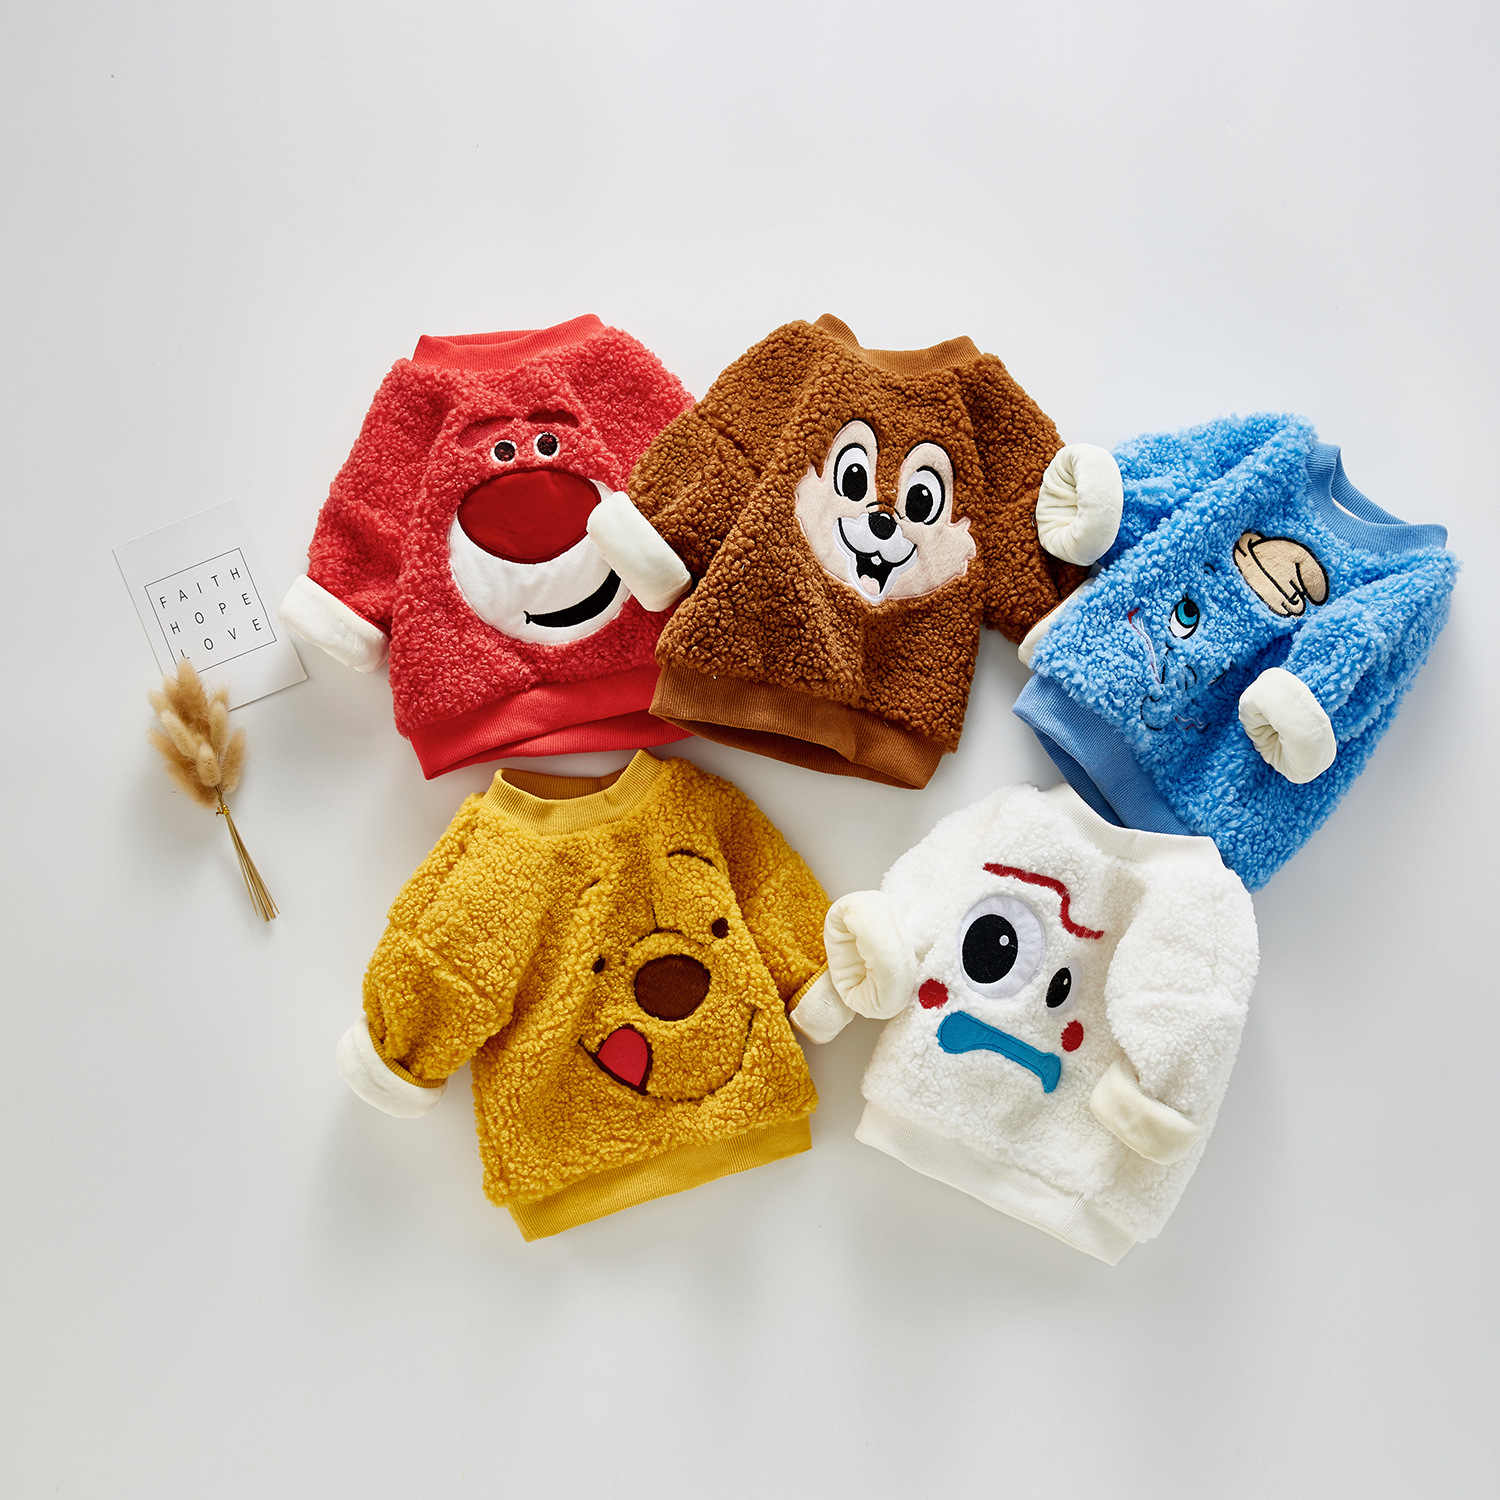 3070 Baby Cute Plush Sweater For Boys And Girls Cartoon Animals Coral Fleece Pullovers Sweatershirts Boys Tops Warm Clothes